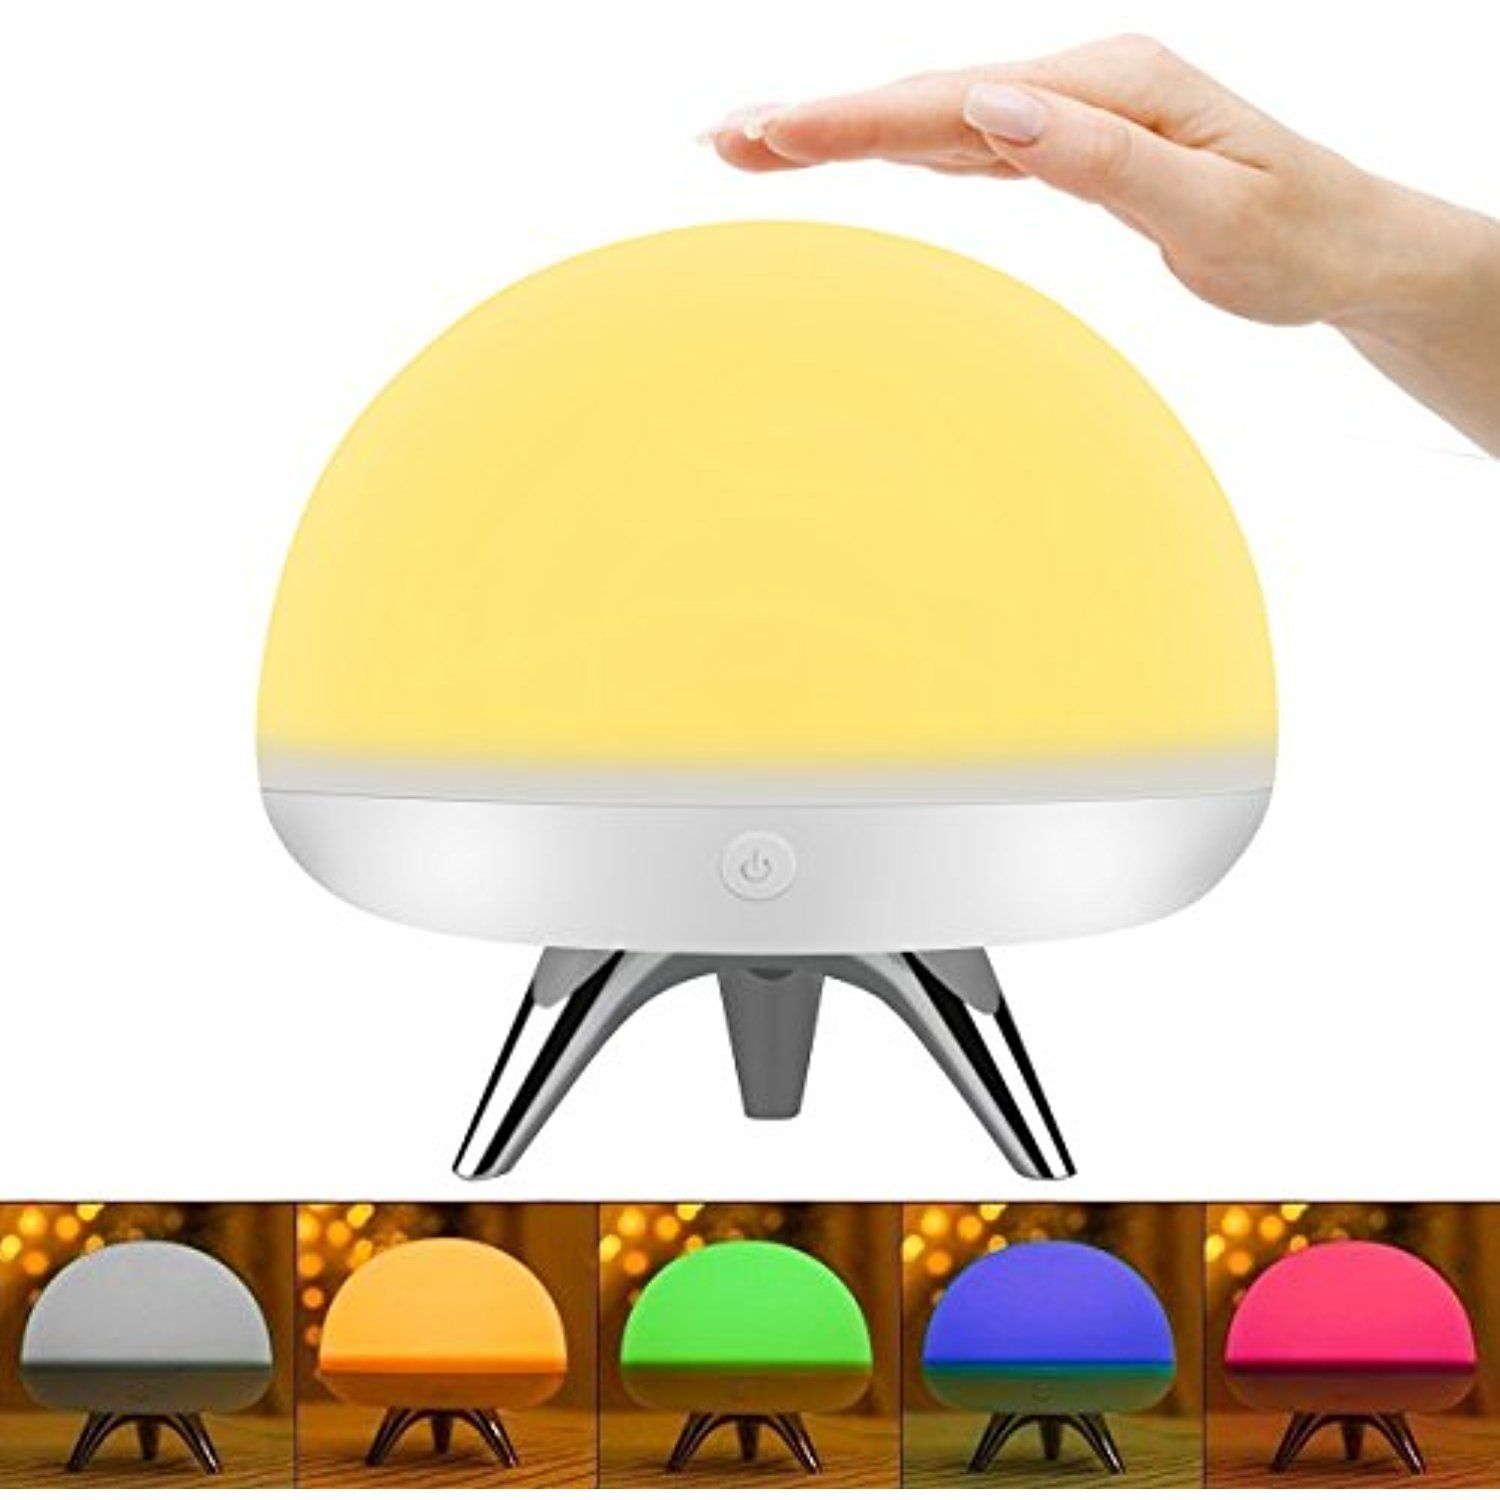 Intsun Children Kids Night Light Led Silicone Toy Nightlight Baby Rooms Nursery Lamps Bedroom Touch Sensor Table L Night Light Kids Nursery Lamp Night Light